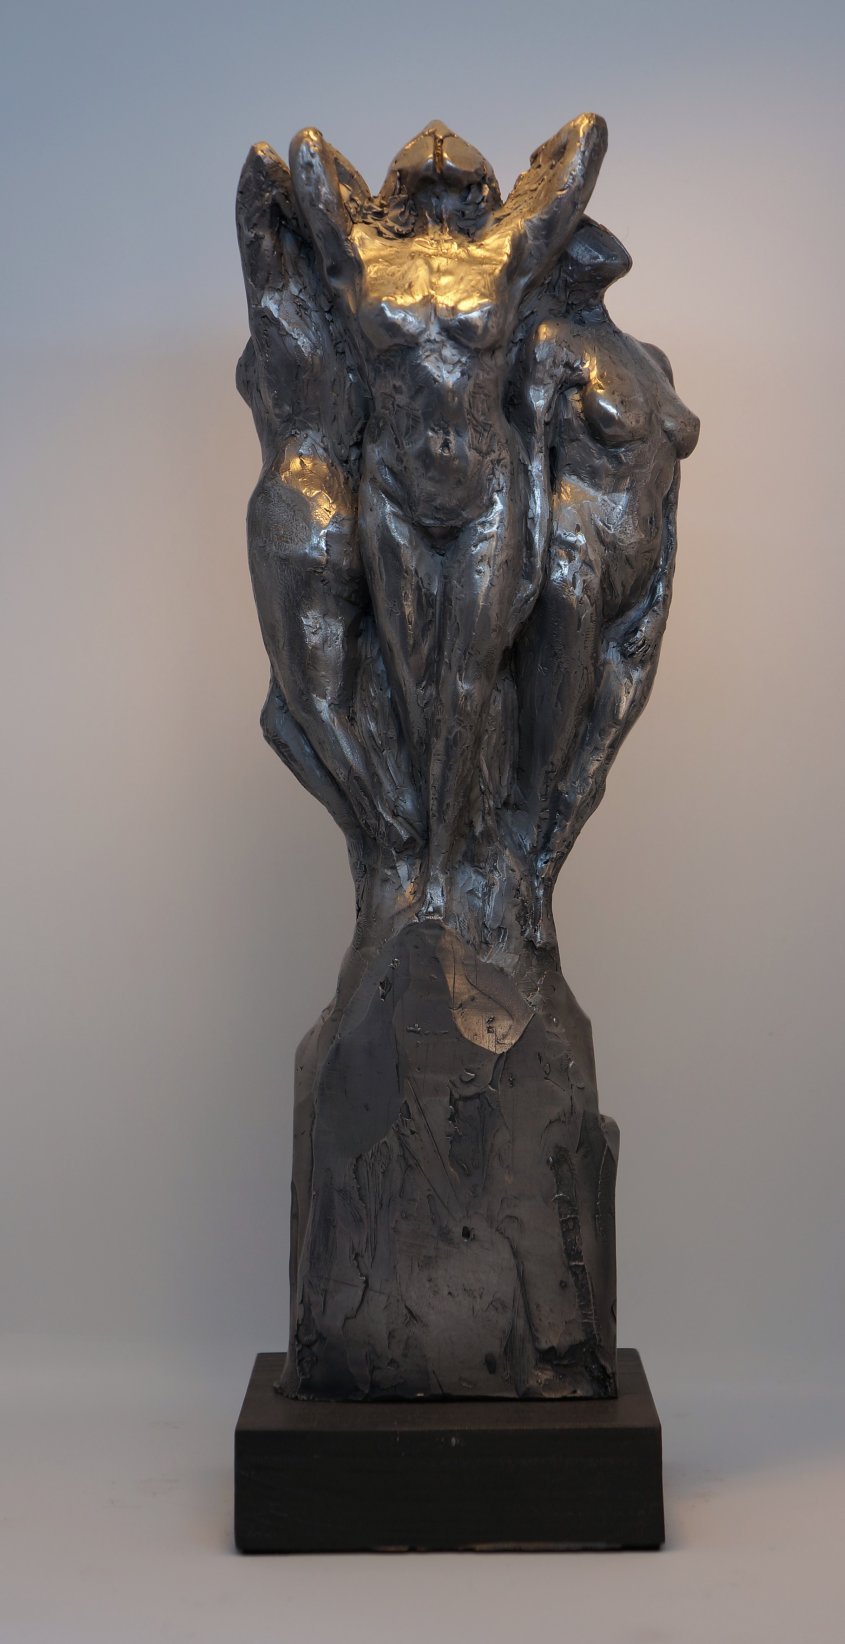 Daughters of Zeus, cold cast aluminium, approx 30cm tall - £100